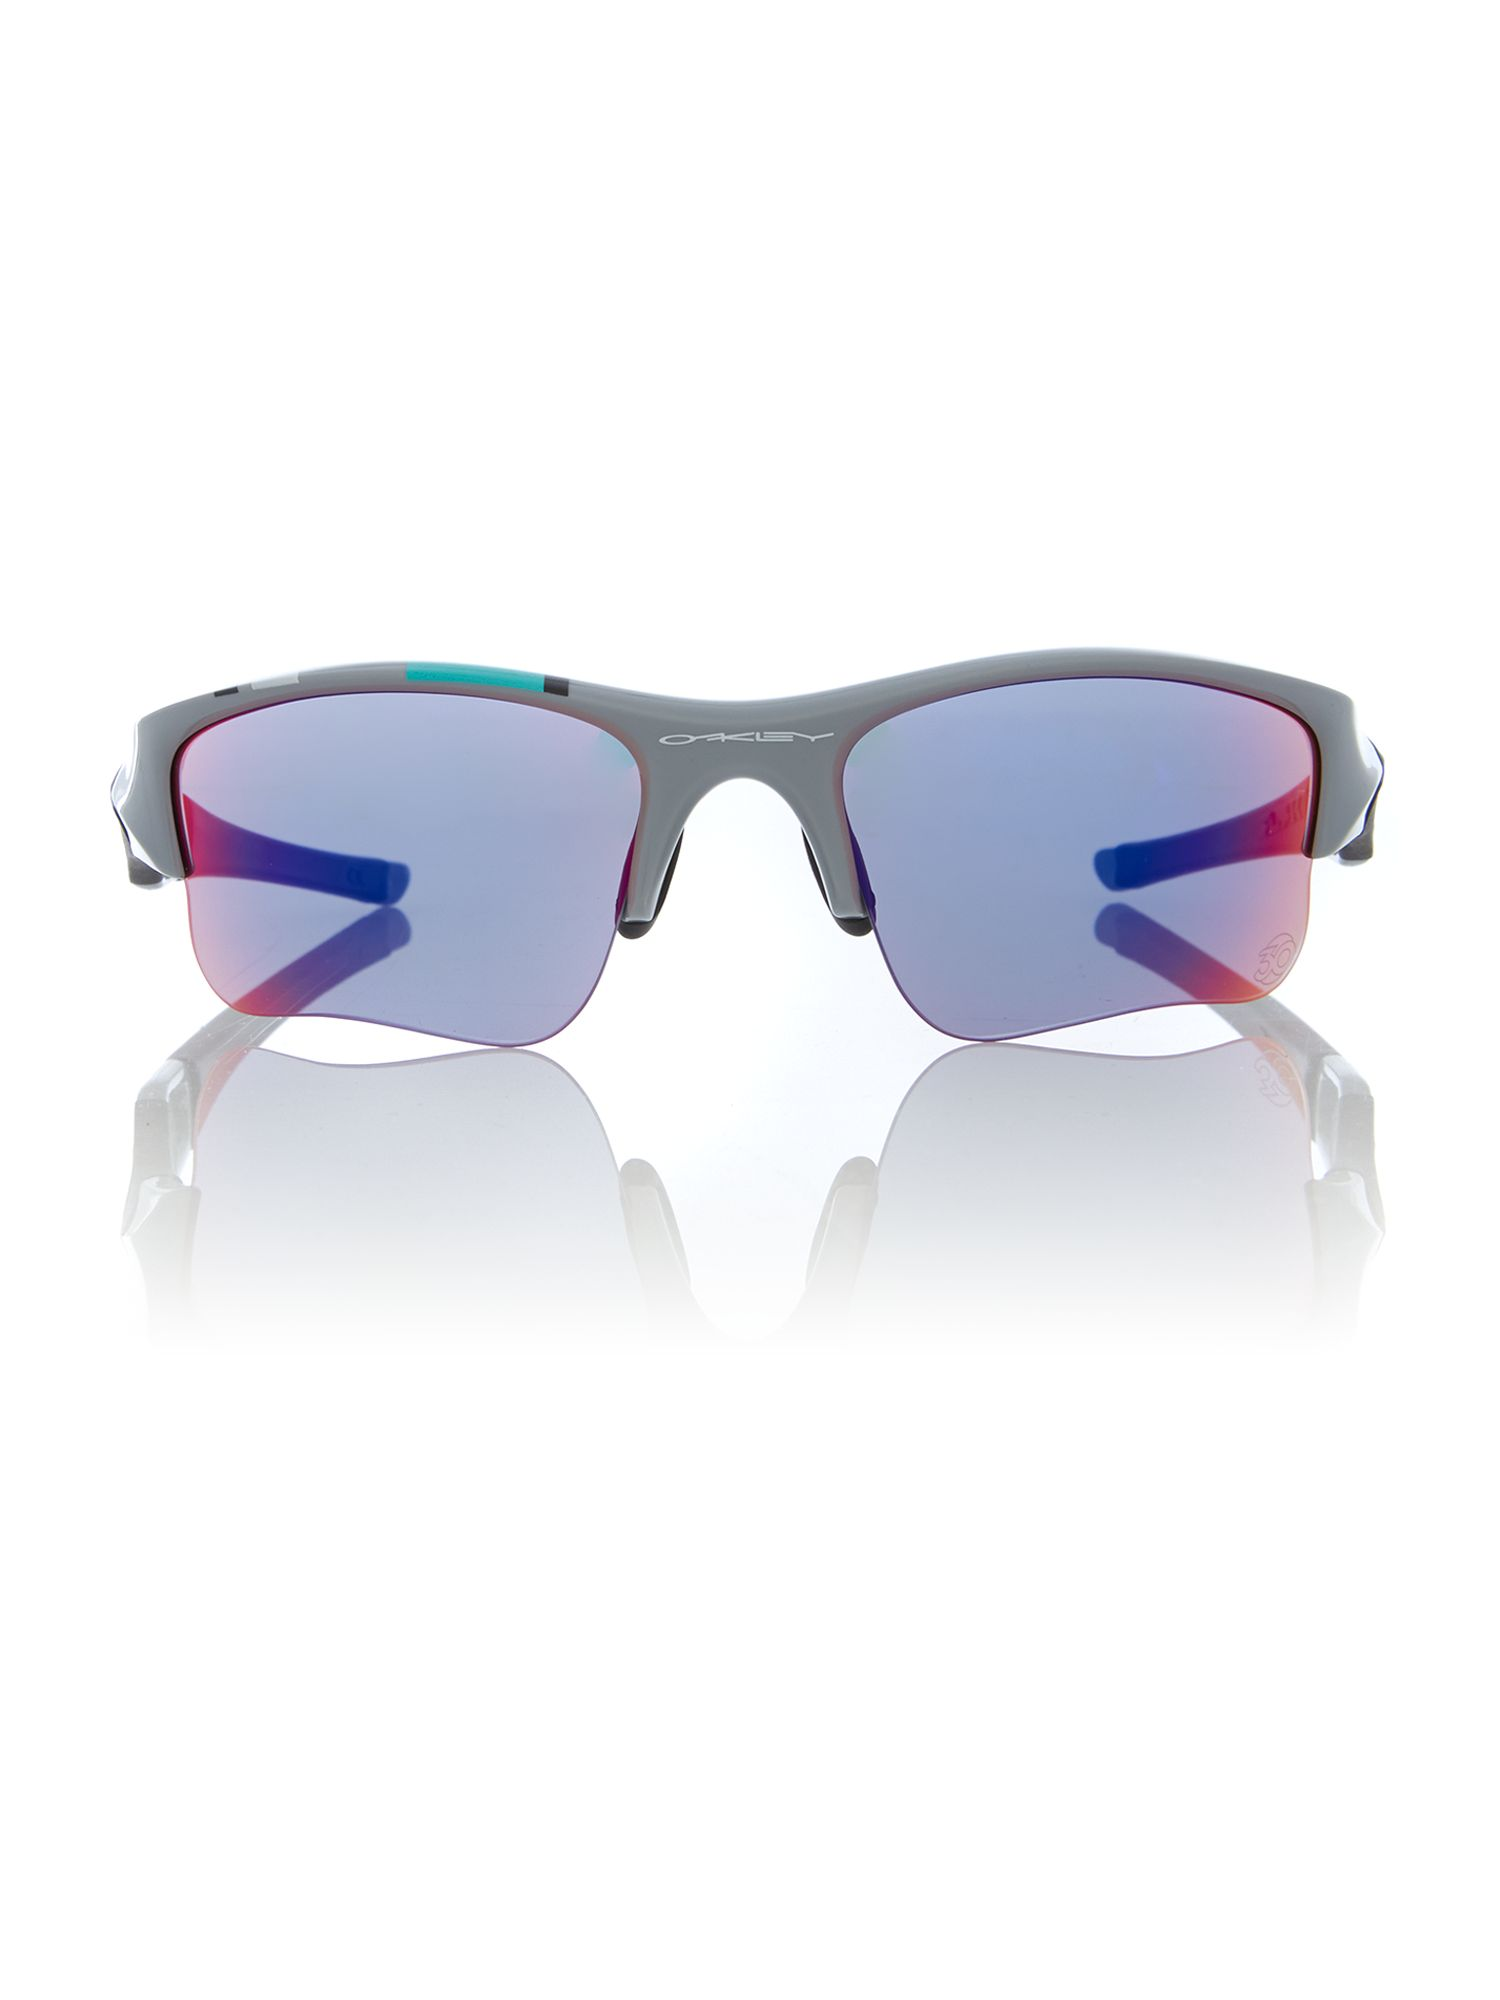 Mens irregular sunglasses